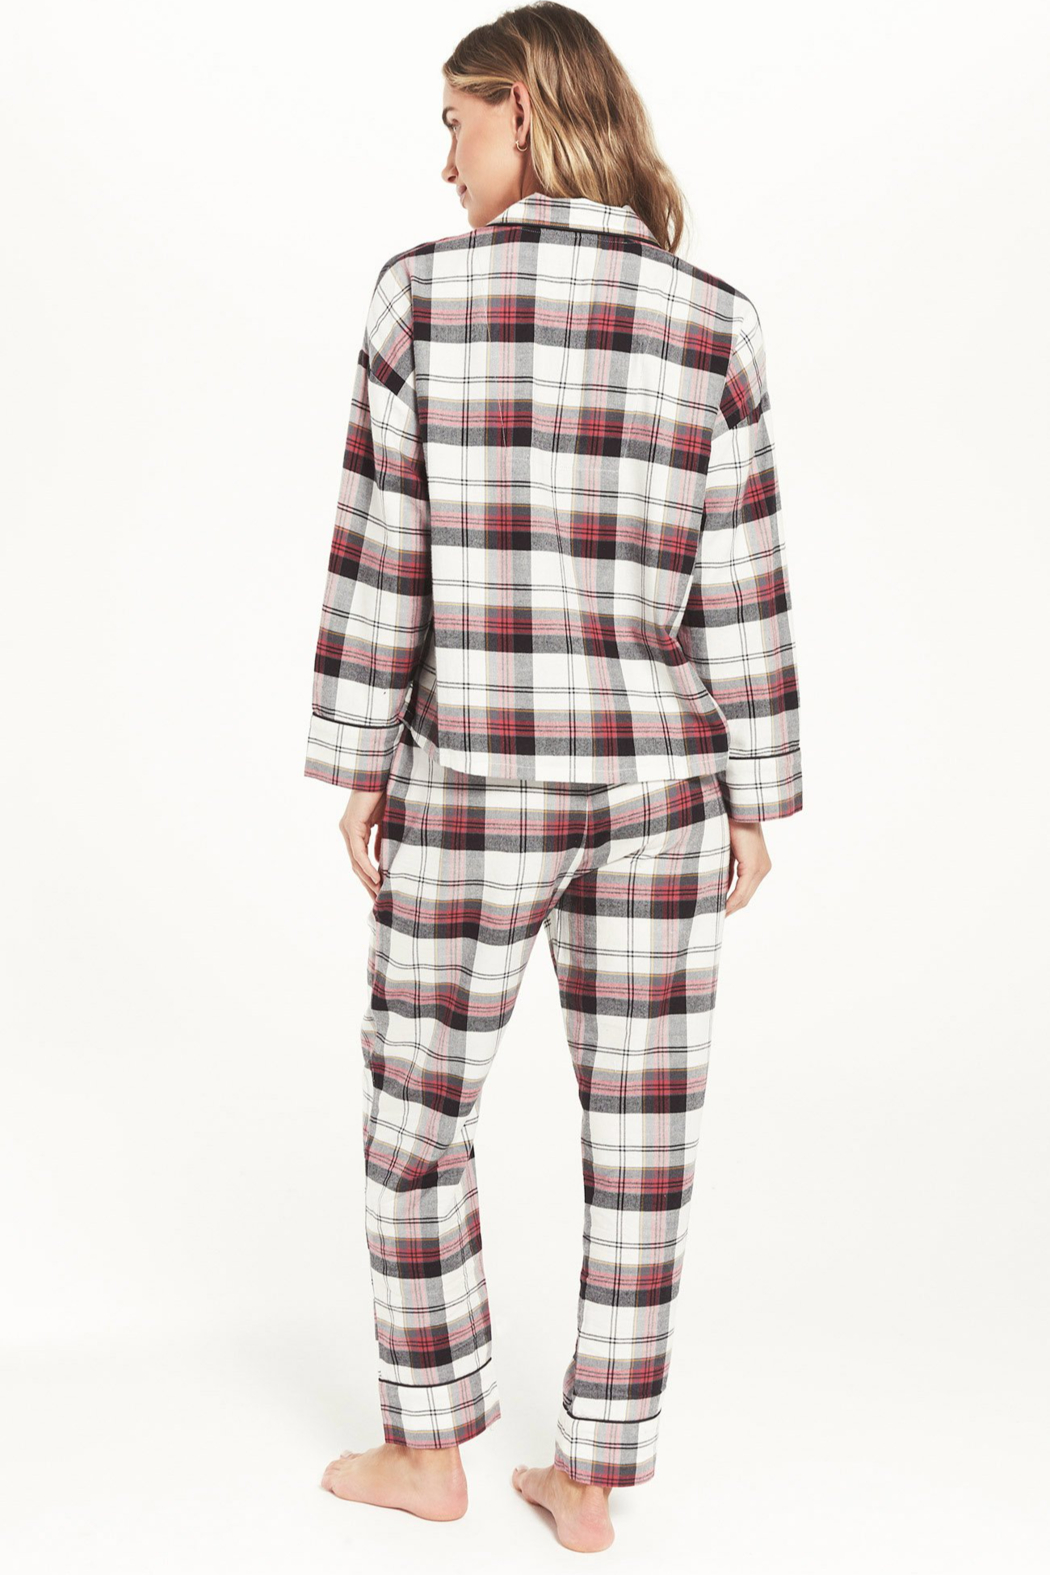 z supply Dream State Plaid PJ Set - Back Cropped Image